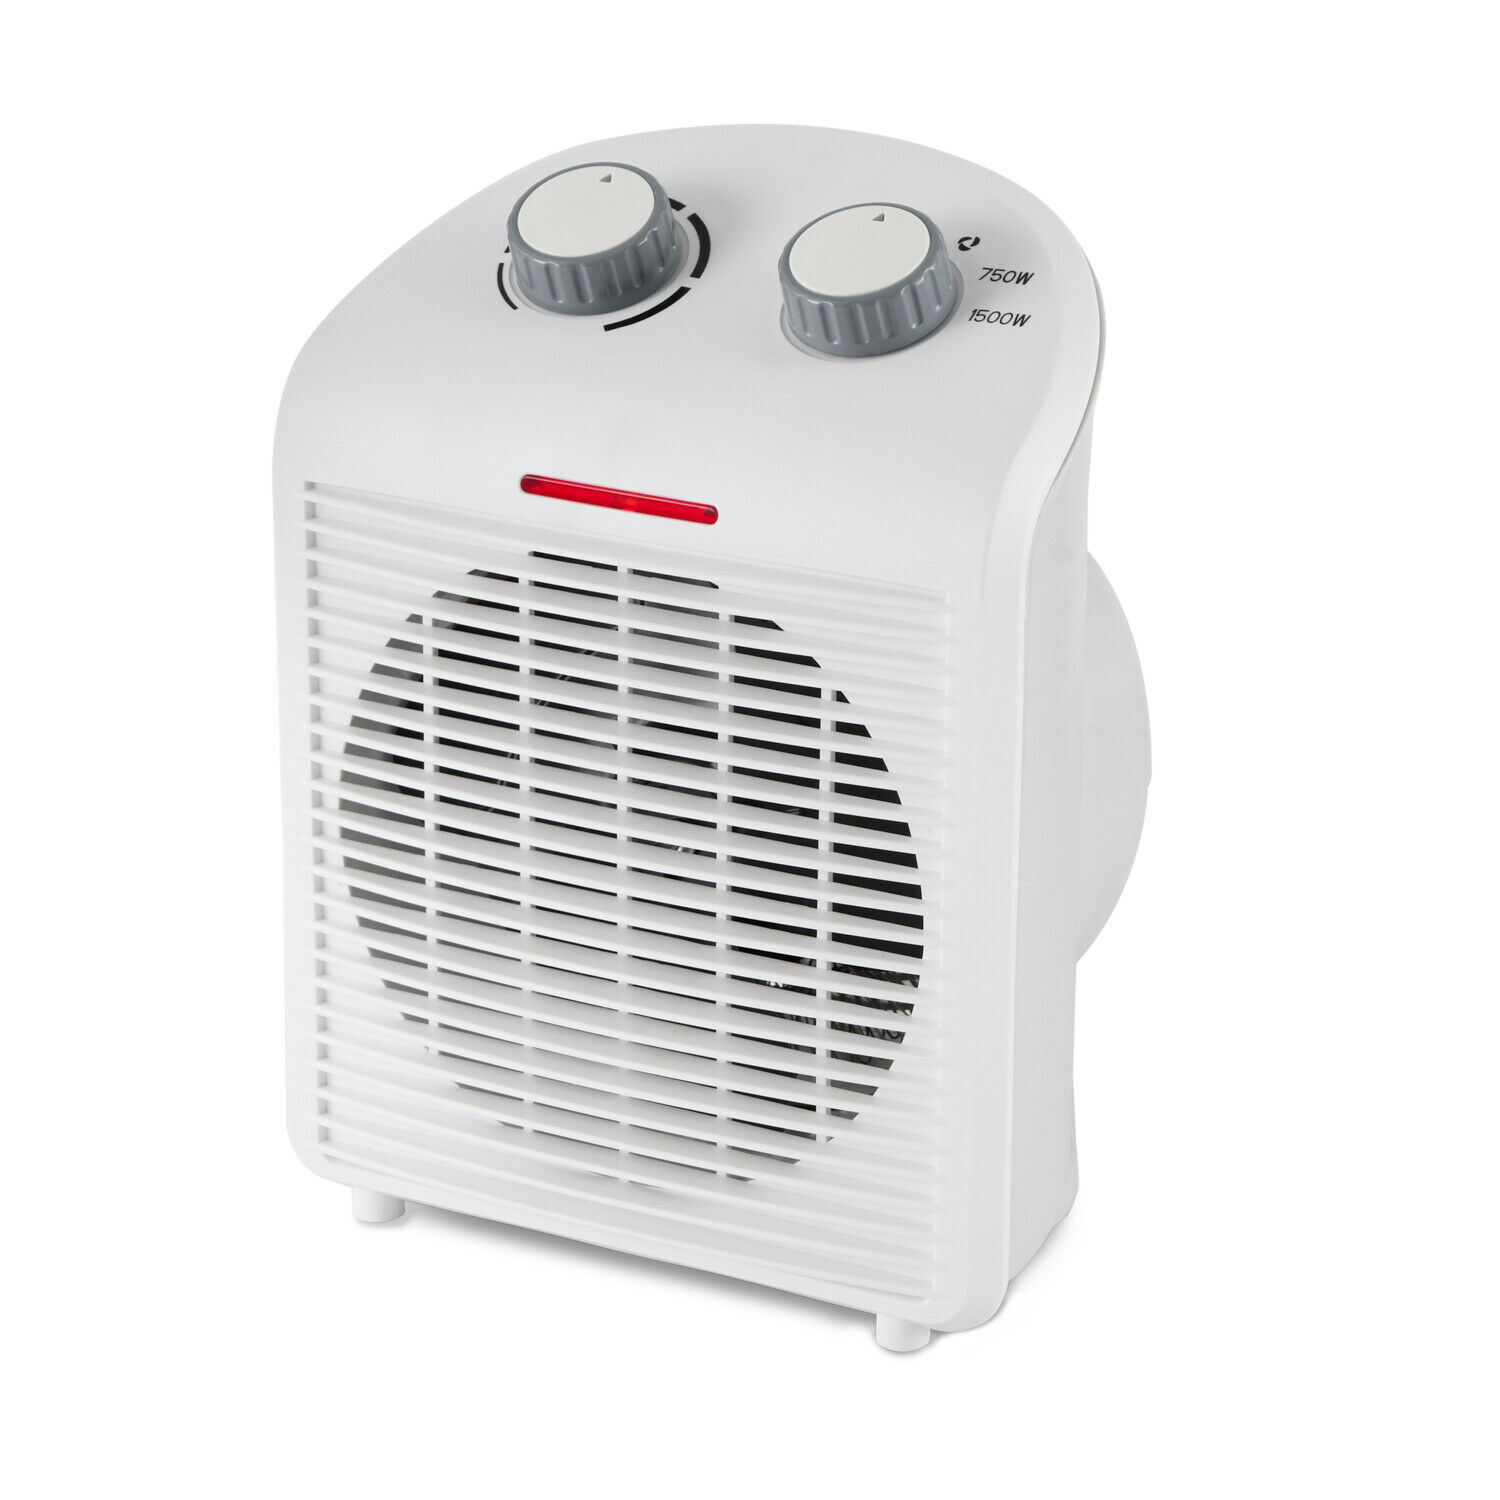 UPC 193802000009 product image for Limina Portable Home Office Personal Electric 1500w Fan Forced Room Space Heater | upcitemdb.com